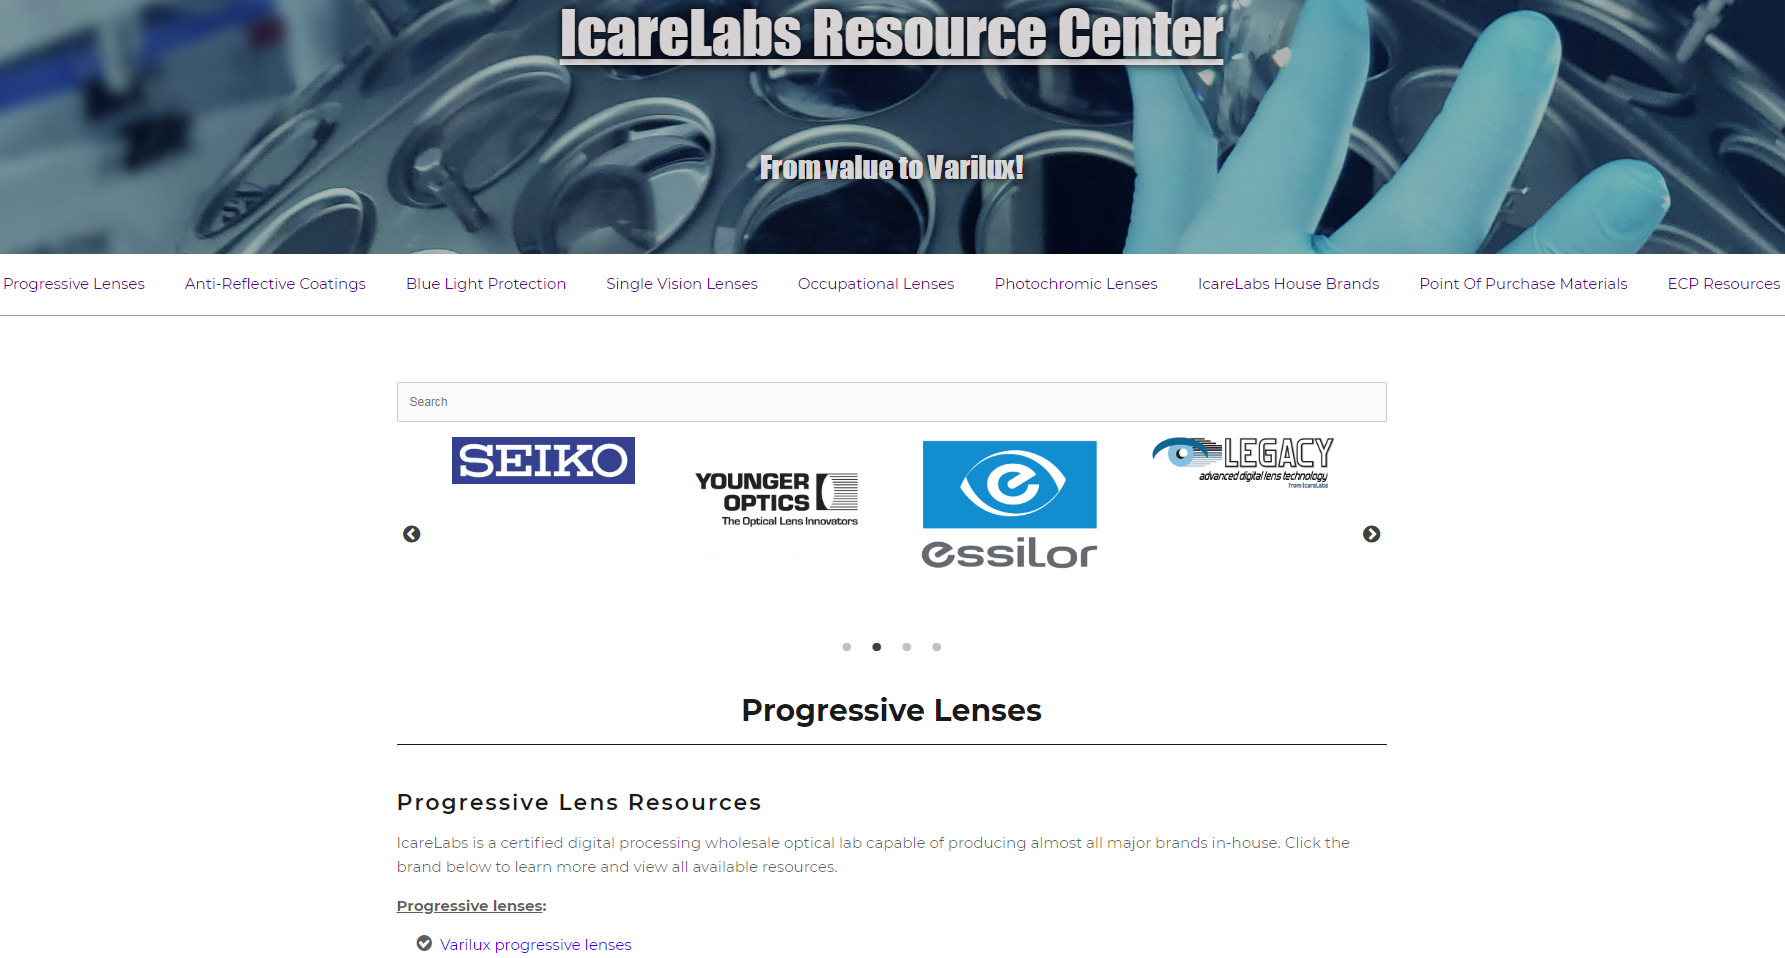 The new IcareLabs Resource Center is available for all eye care professionals